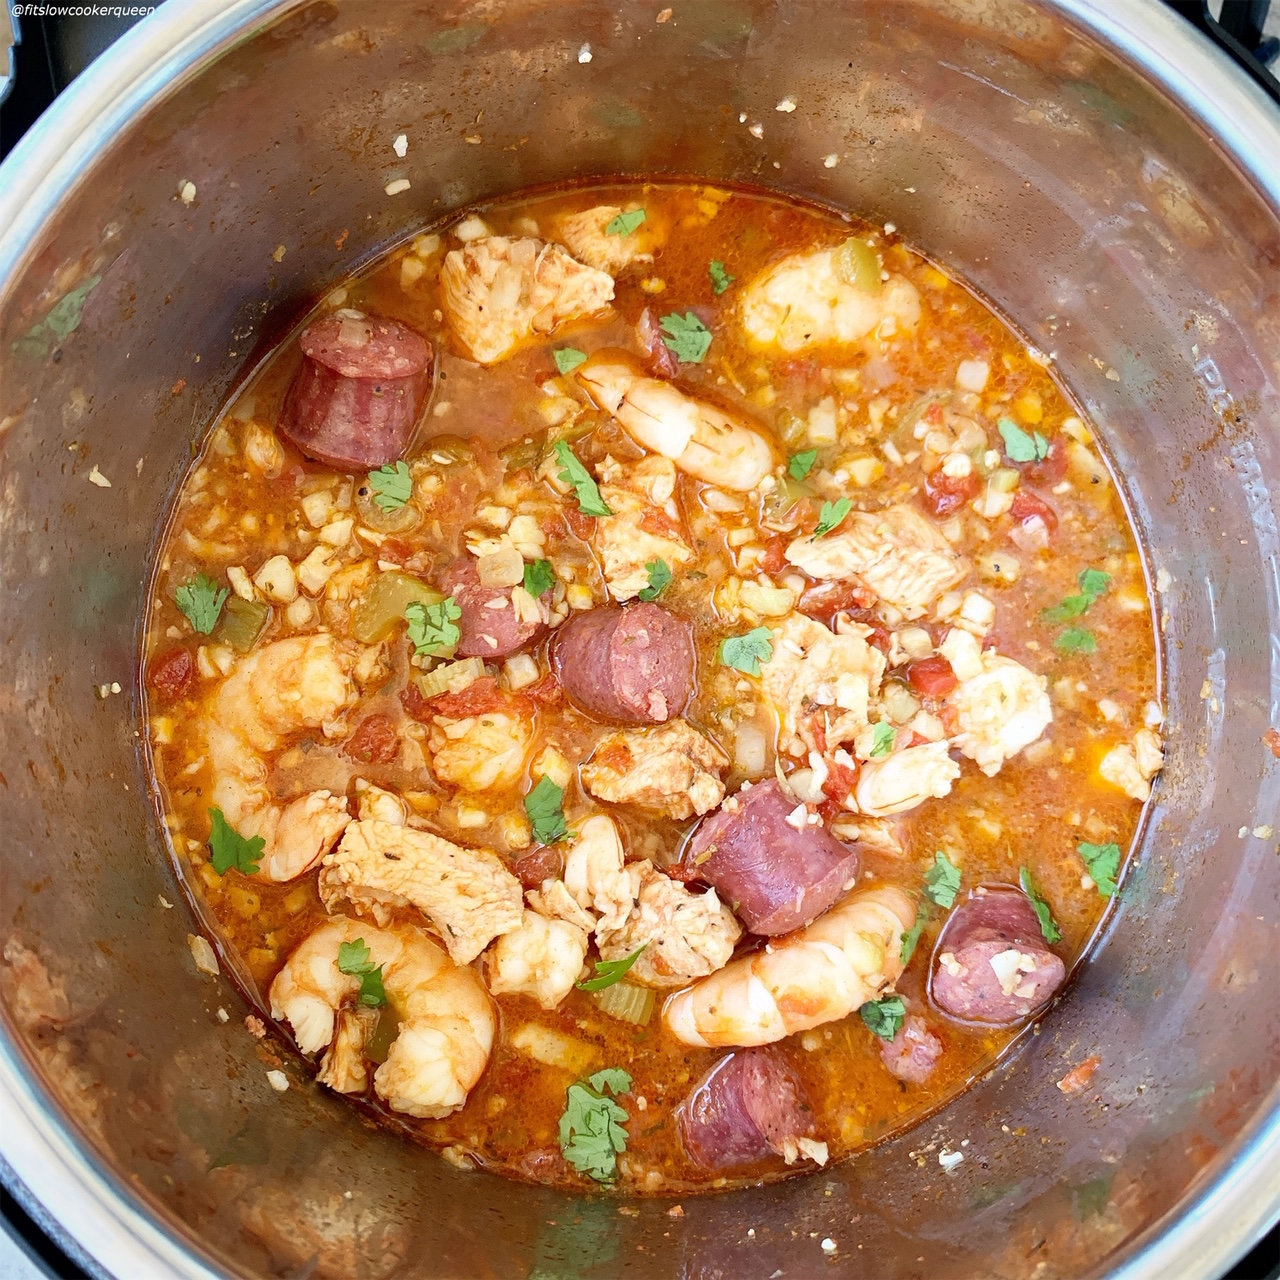 cooked jambalaya in the pressure cooker for Slow Cooker_Instant Pot Jambalaya (Low-Carb, Paleo, Whole30) pin1